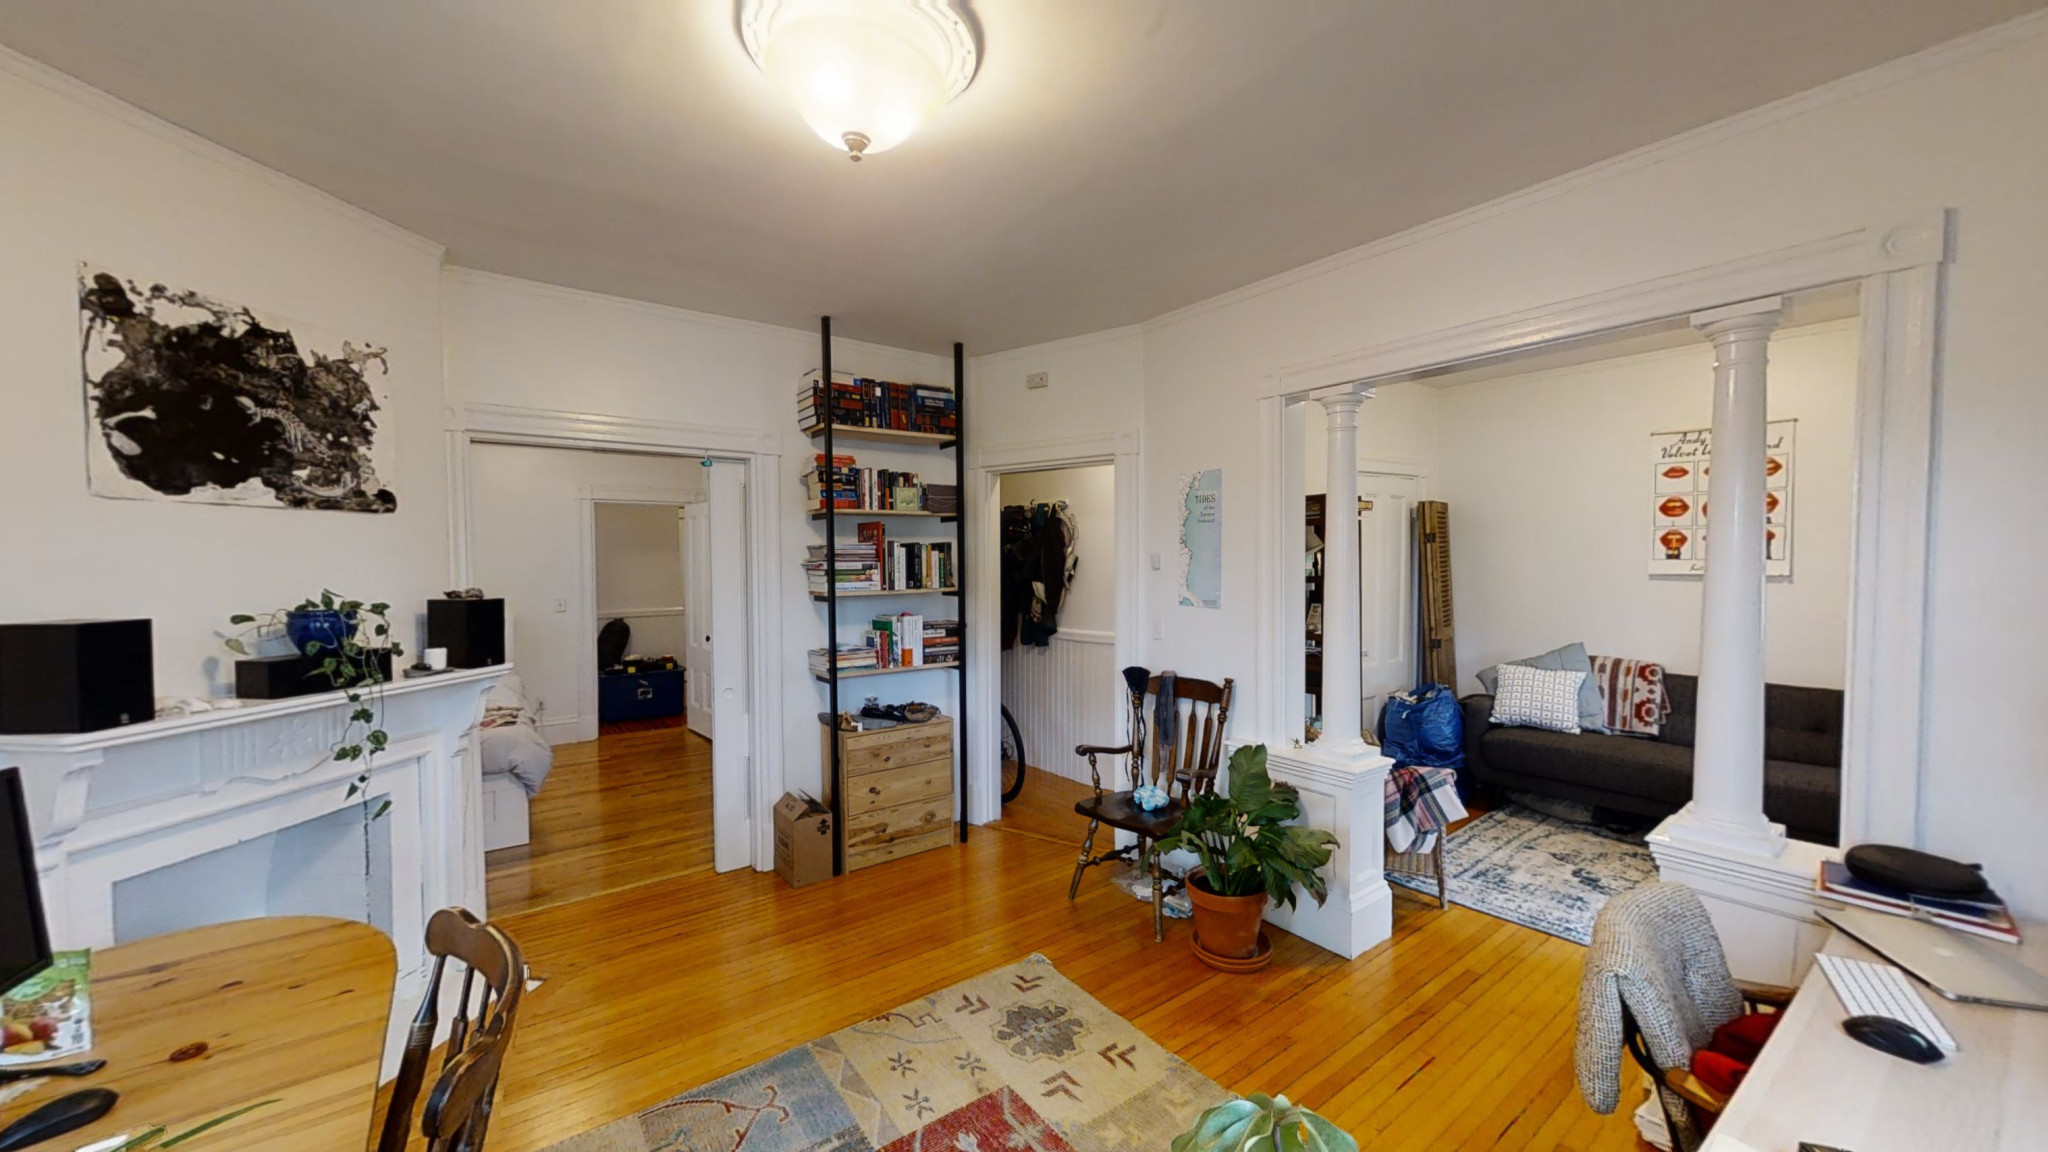 1 Bed, 1 Bath apartment in Somerville for $1,970